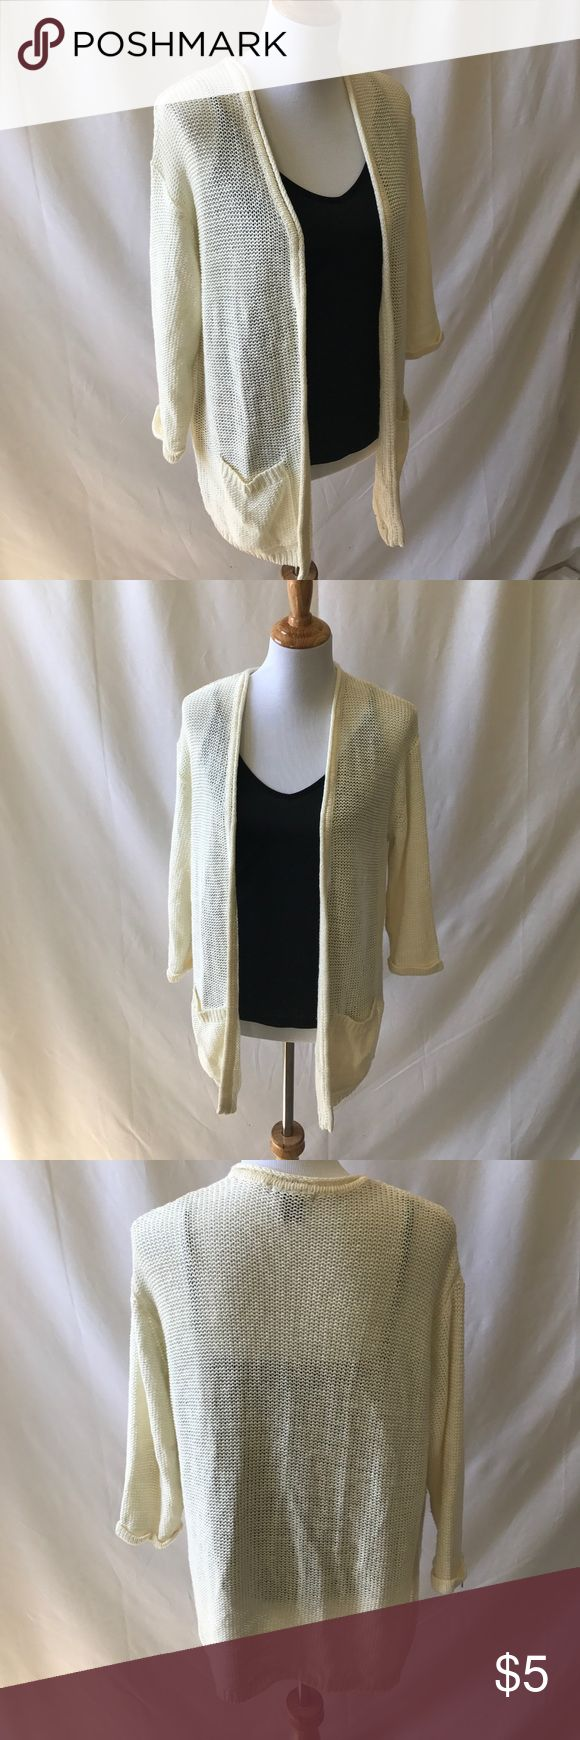 Cream Cardigan *NWOT* A staple for your closet - a cream colored drape cardigan. It has an almost mesh-like pattern to the knit, squishy soft. No tears, loose threads, pulls, or marks. Never been worn. Oversized fit. H&M Sweaters Cardigans